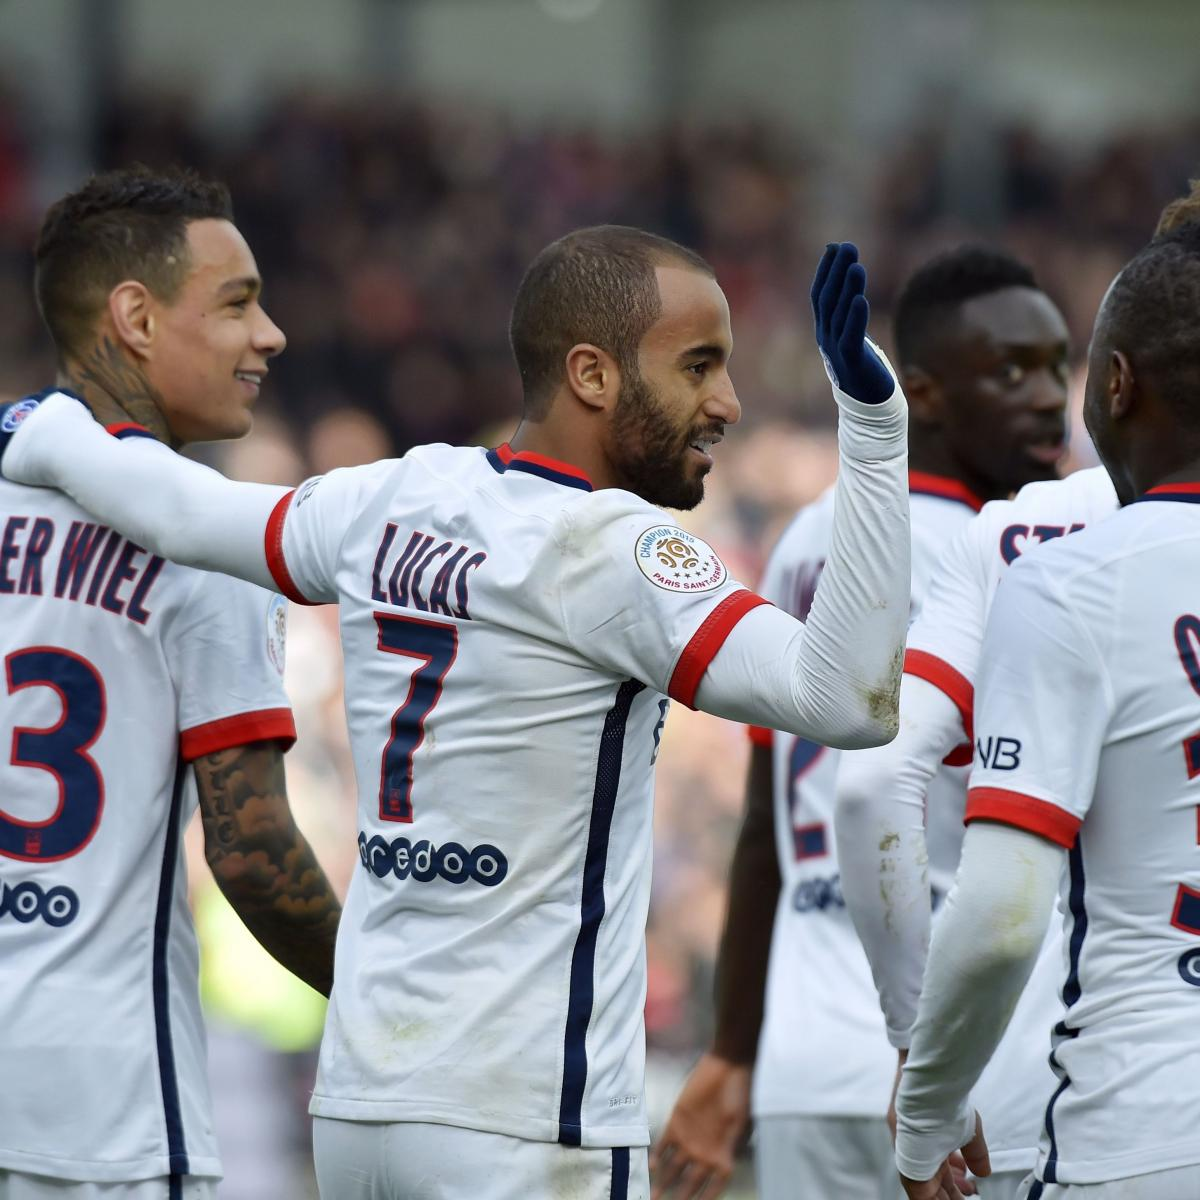 Malmo Vs Psg Winners And Losers From Champions League: Guingamp Vs. PSG: Winners And Losers From Ligue 1 Game